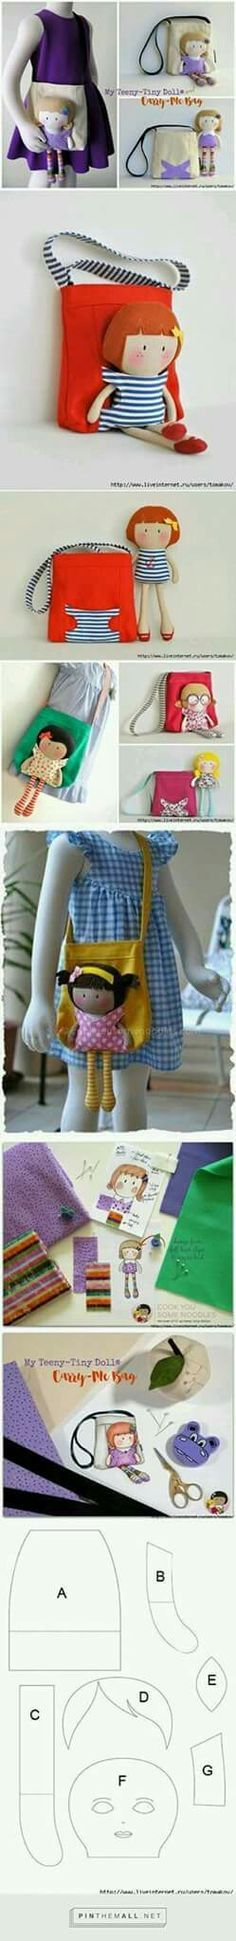 Bolso doll carrier shoulder bag for girls travel or school! Or for boys! My son would love one to carry his beloved studded lion in